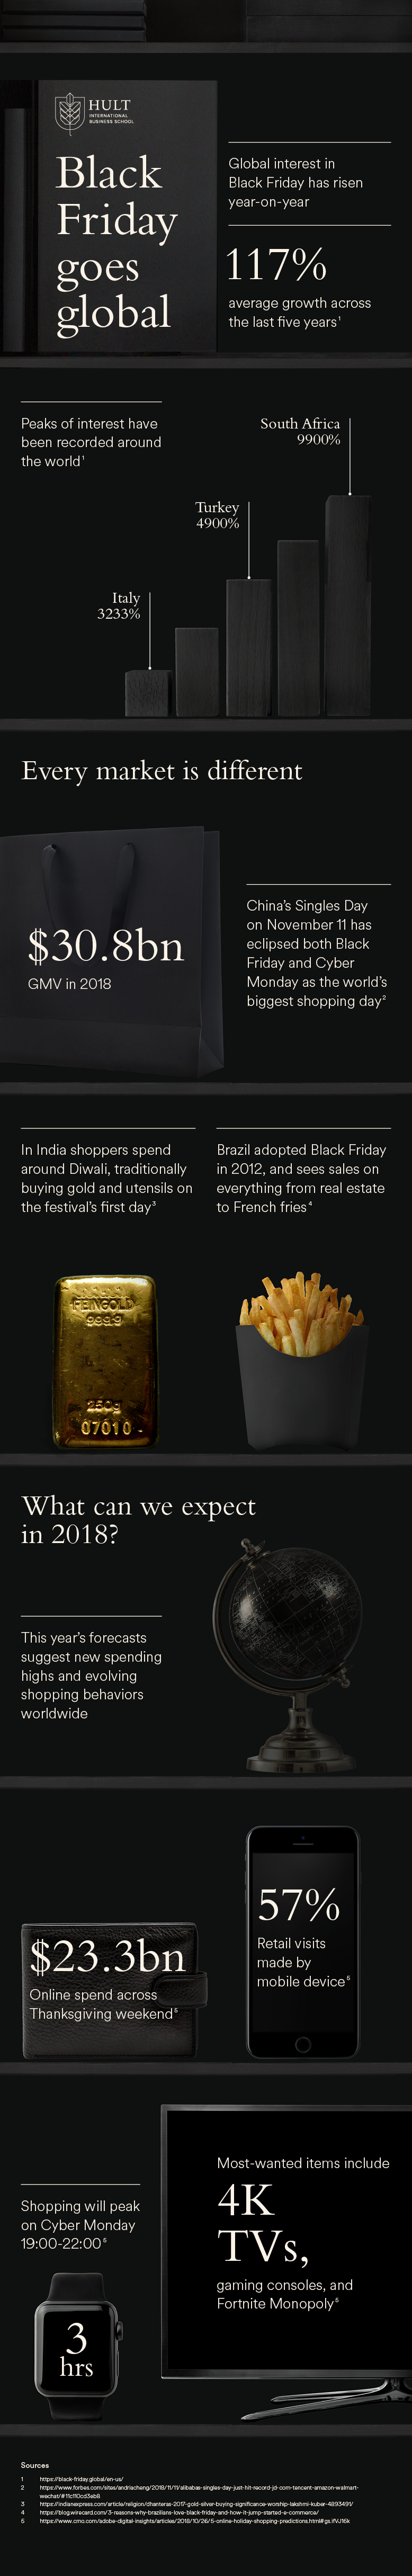 Infographic: Black Friday goes global